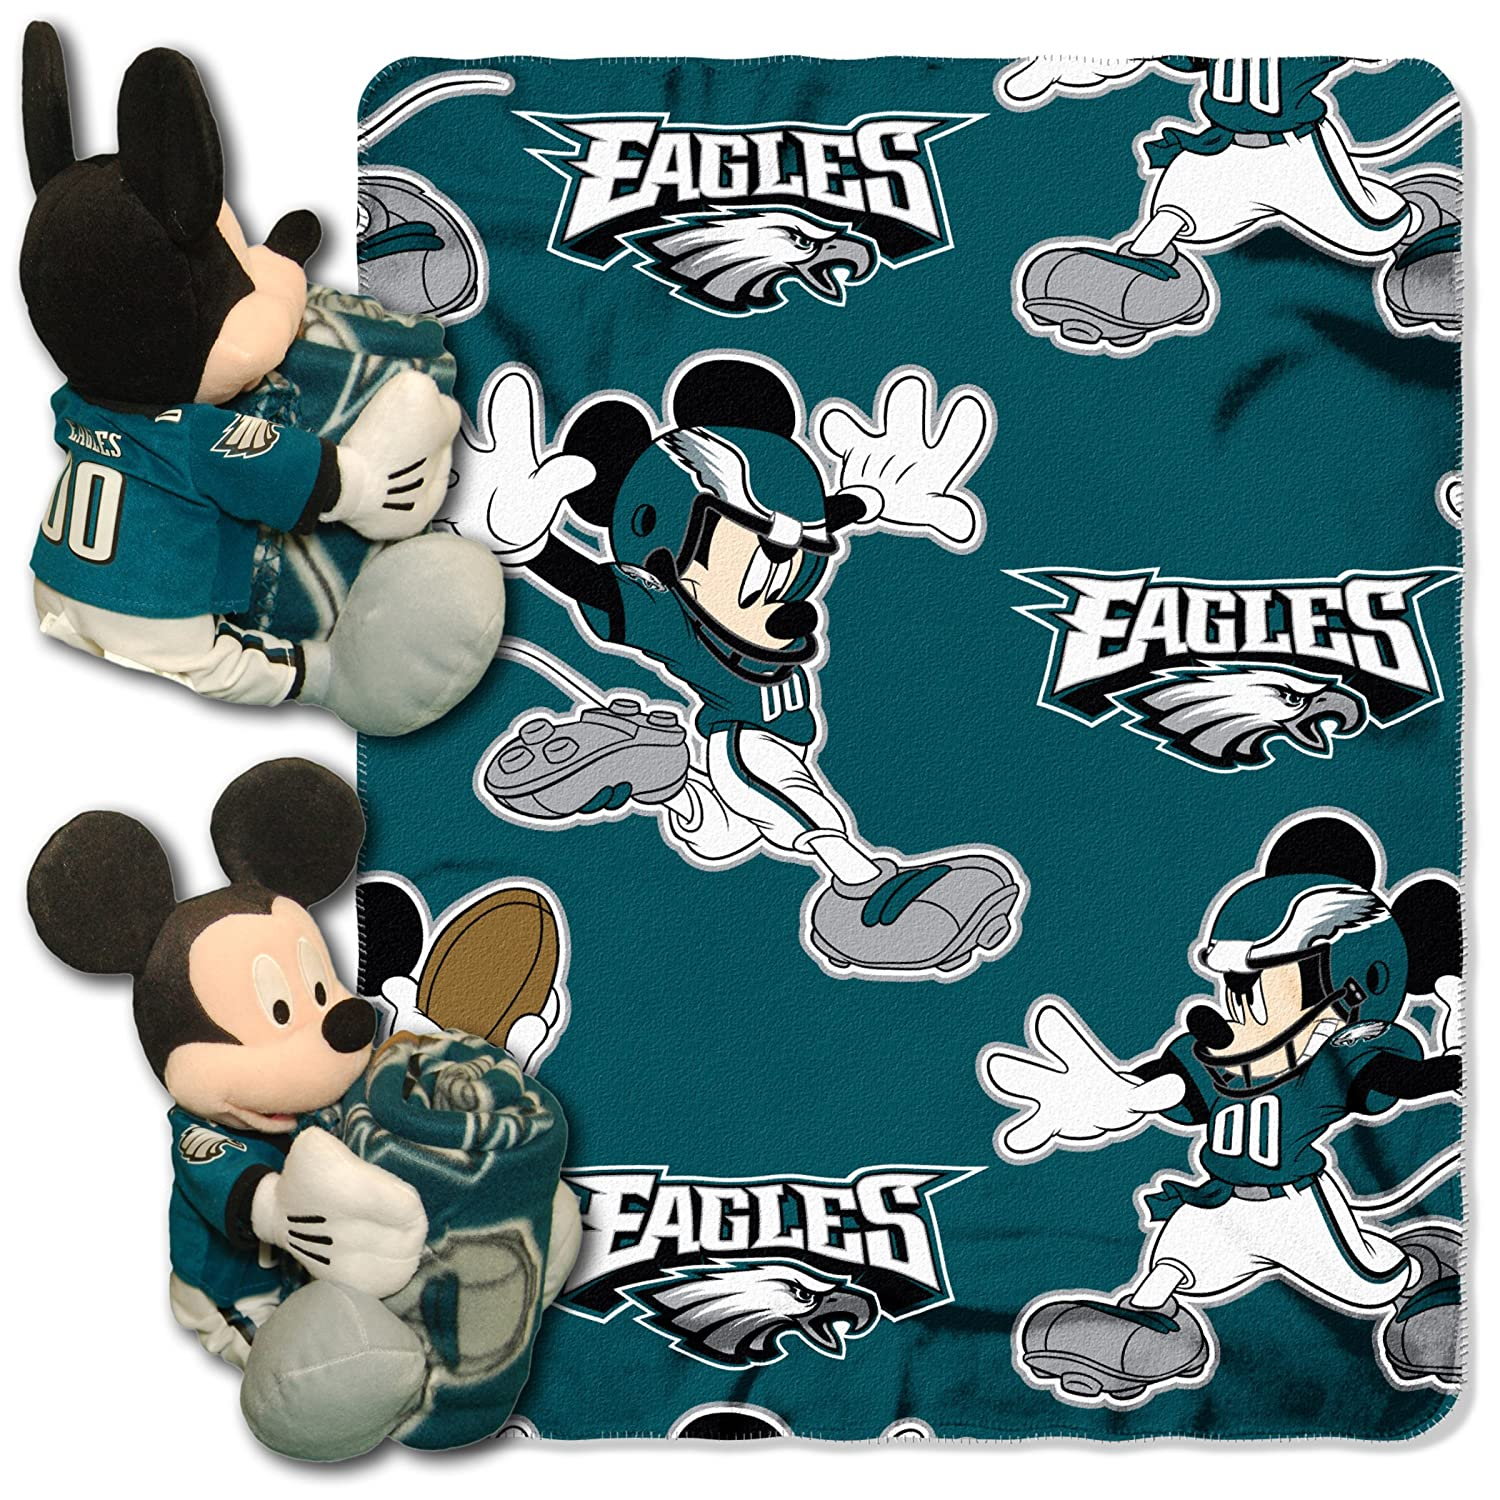 "Officially Licensed NFL Co Mickey Mouse Hugger and Fleece Throw Blanket Set, Multi Color, 40"" x 50"""